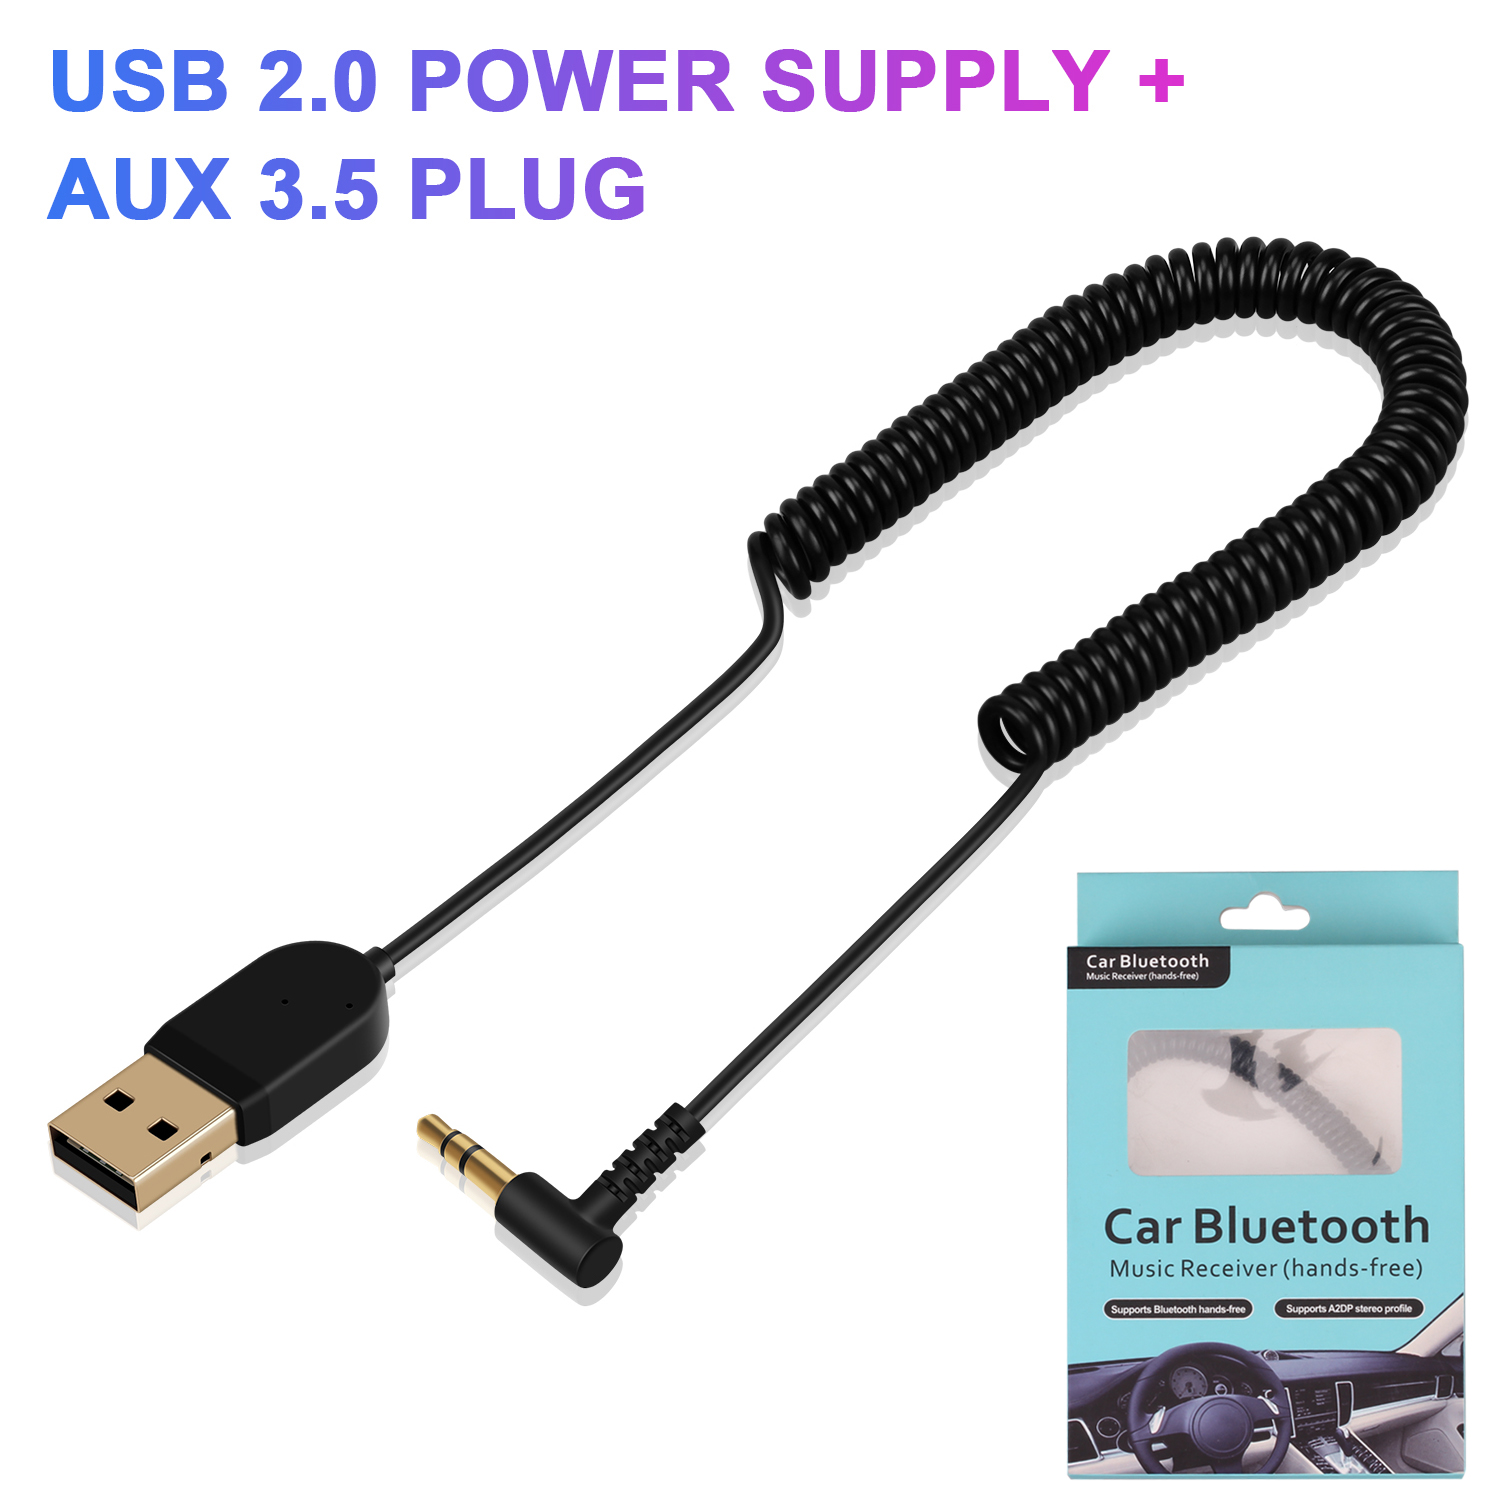 5.0 Bluetooth Adapter Mini USB 2.0 CSR Adjustable Receiver Adapter For Car Speaker AUX Interface Speaker With 3.5 Plug Cable